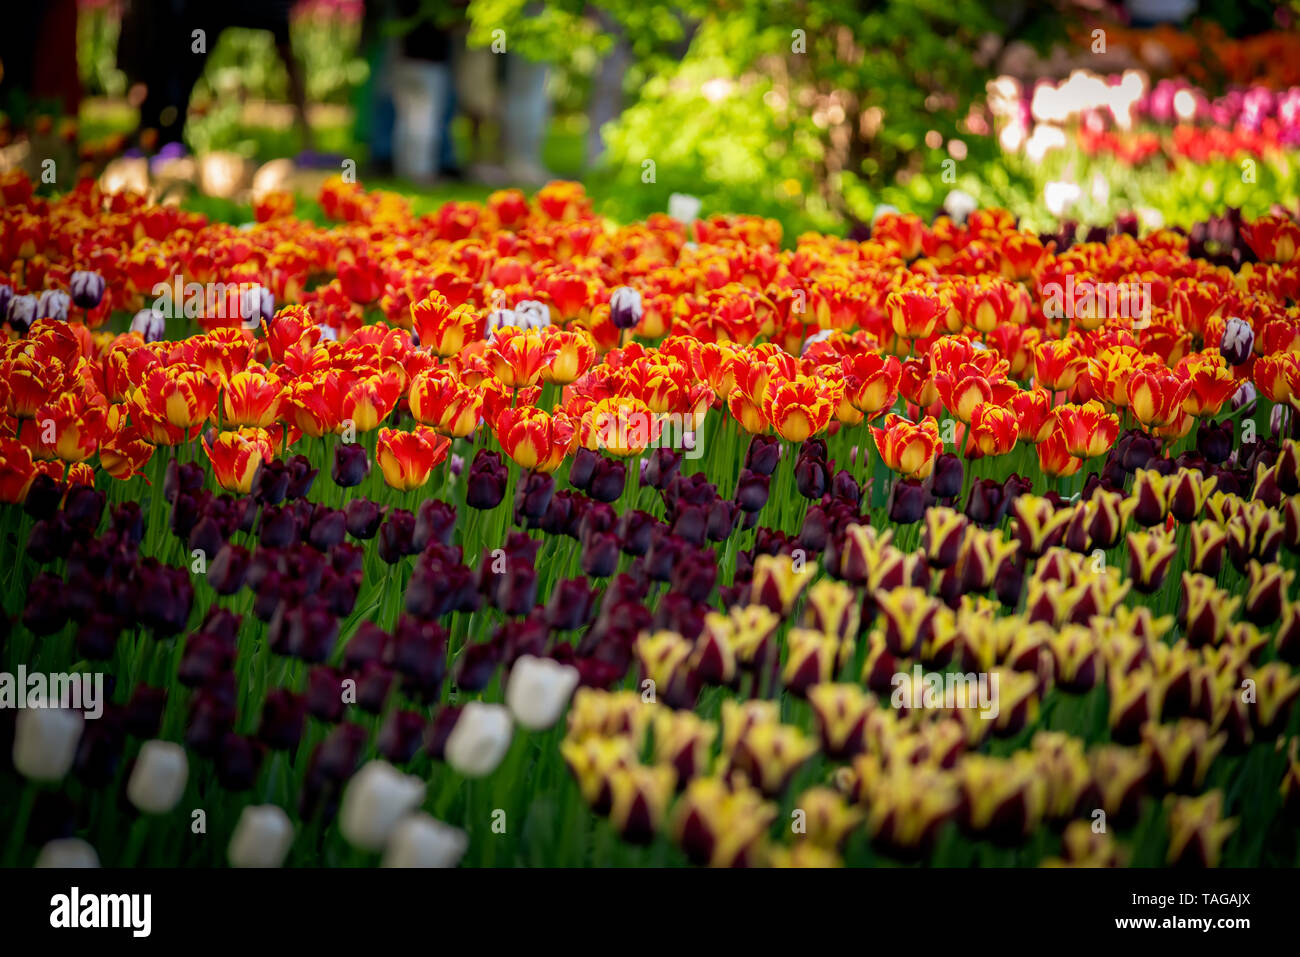 Awesome colorful field of red-yellow, dark violet tulips from Tulip Festival. - Stock Image